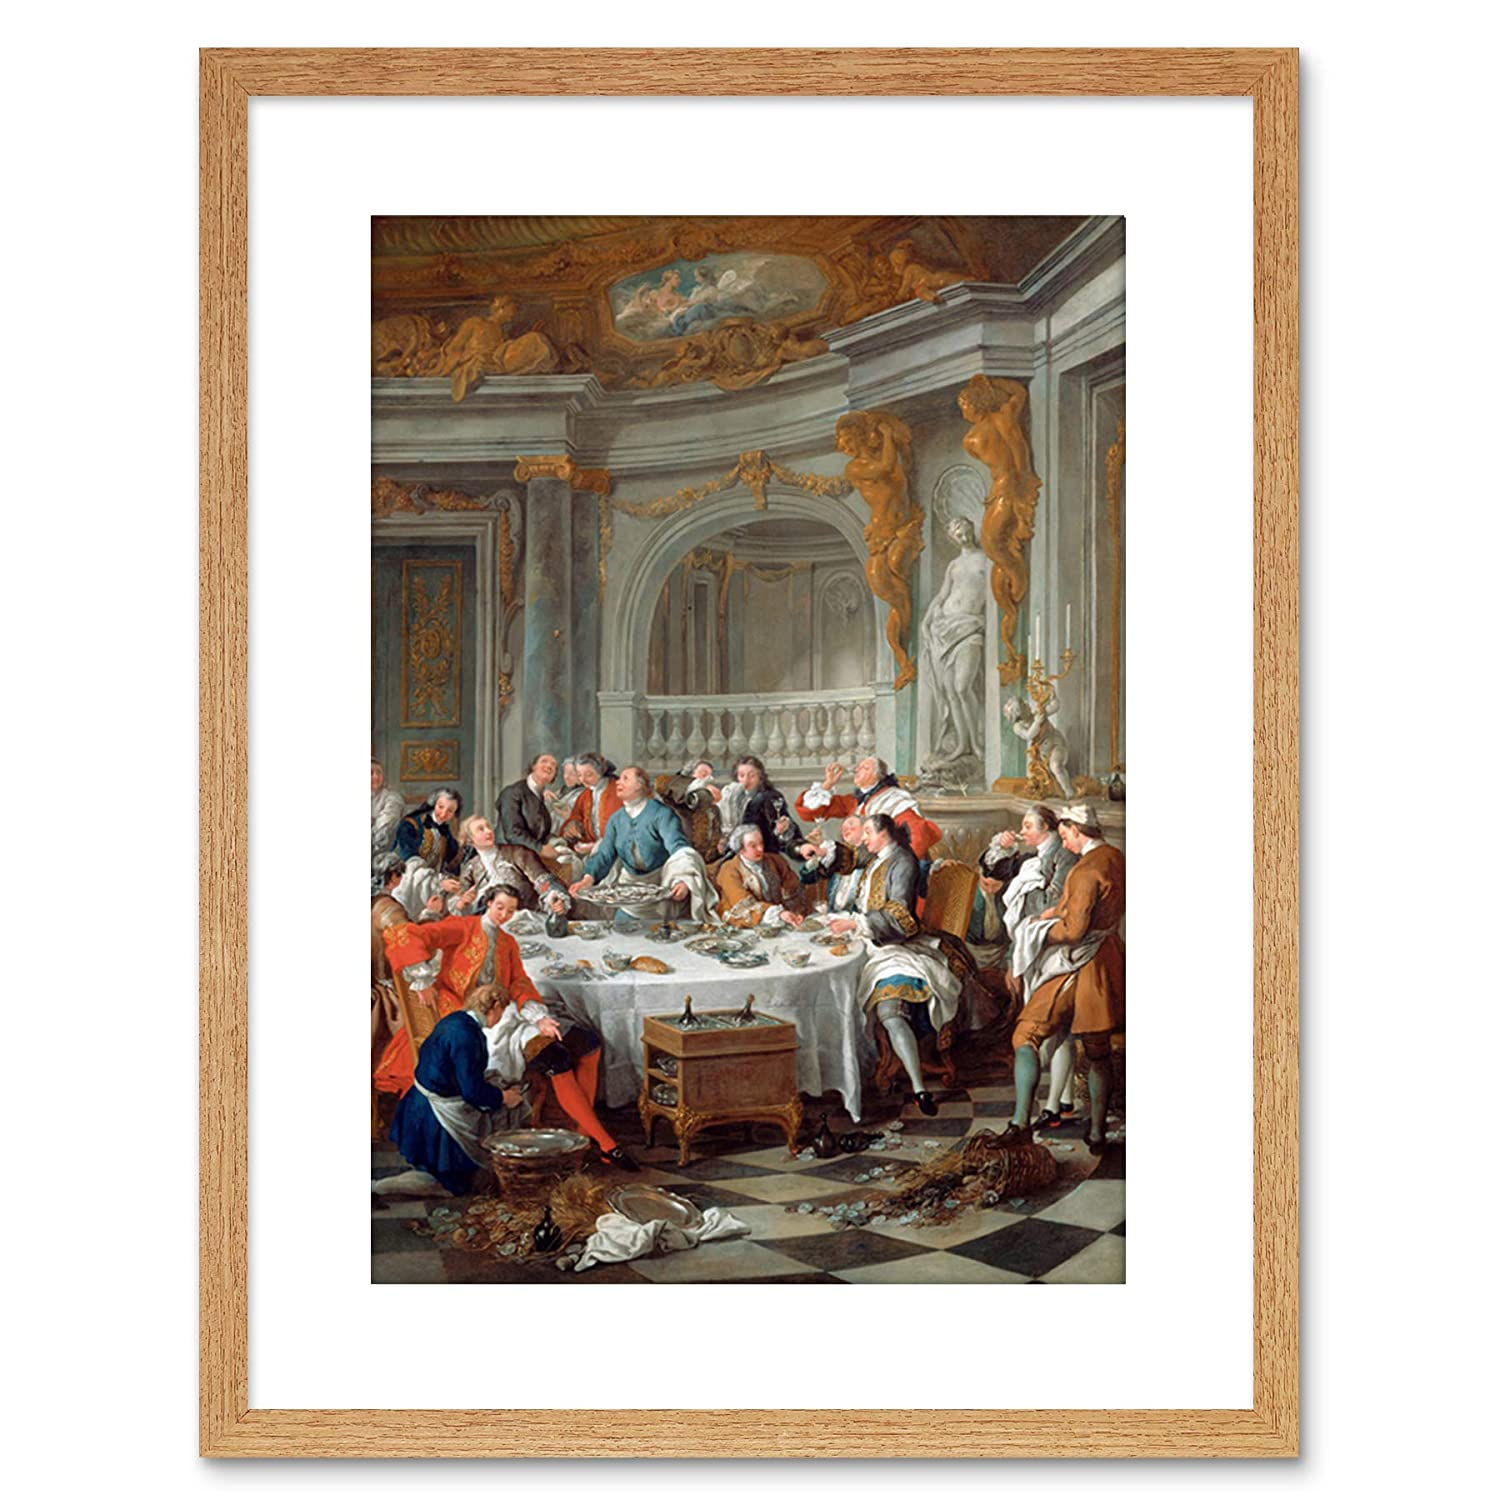 PAINTING INTERIOR STUDY DE TROY OYSTER LUNCH FRAMED PRINT F97x11532